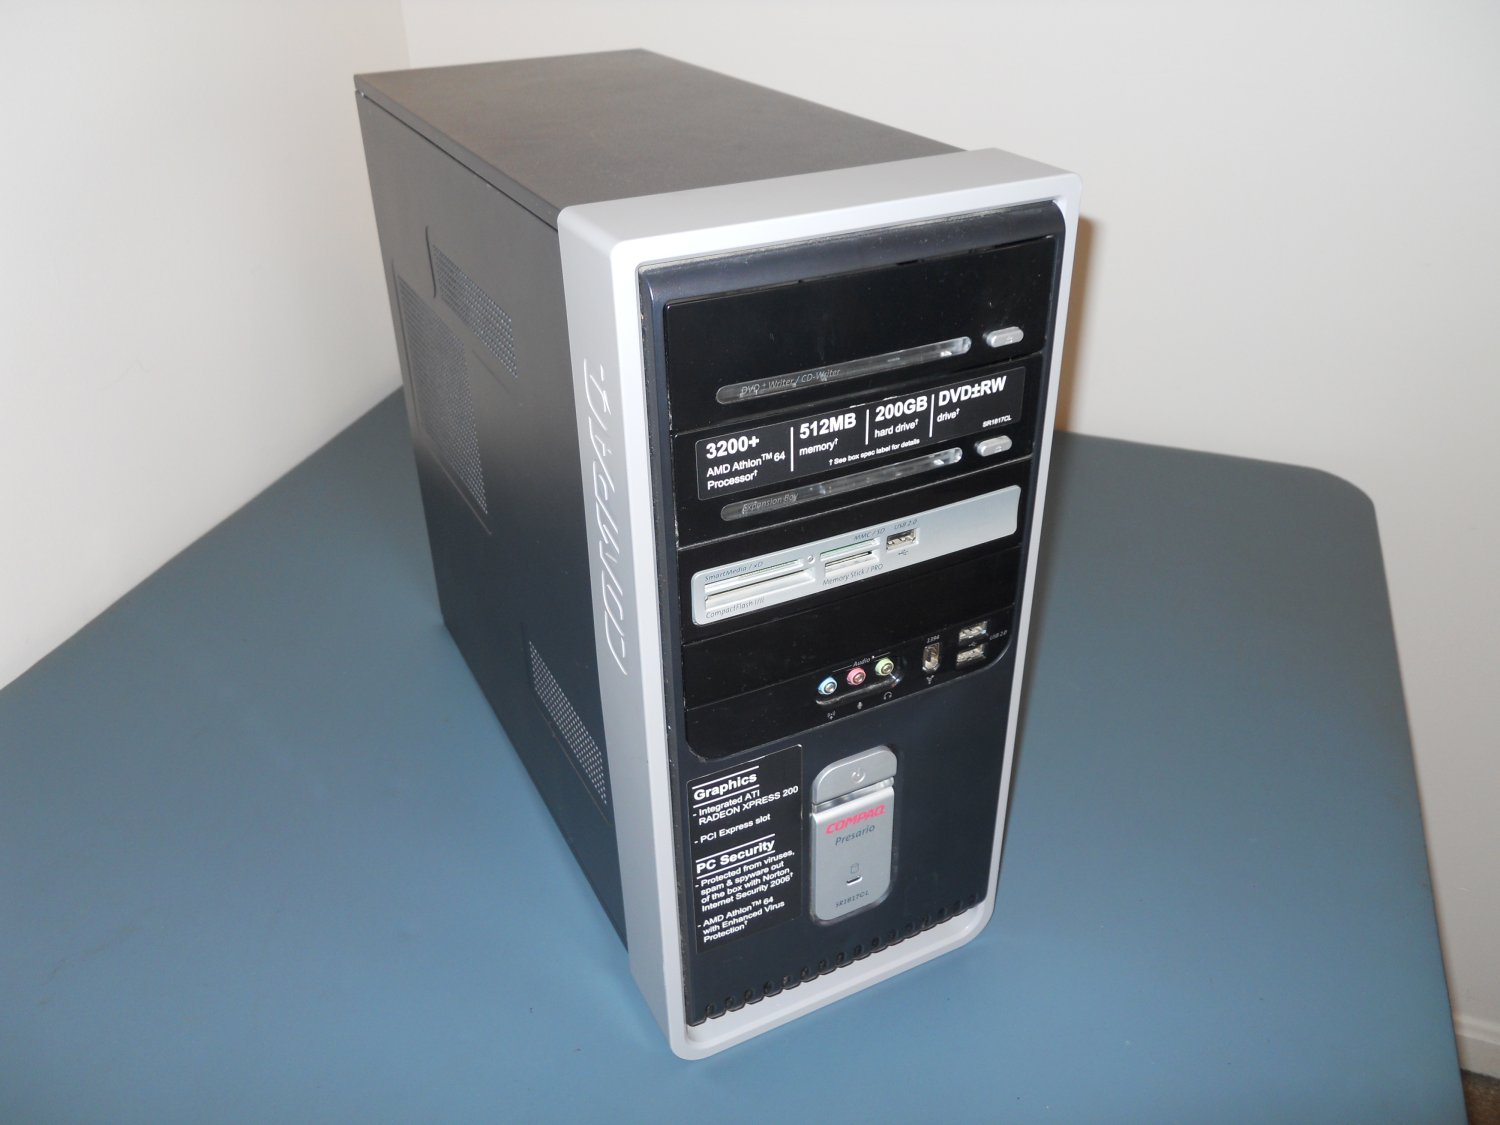 Compaq Presario mid-tower ATX PC Case chassis tower with XP Key